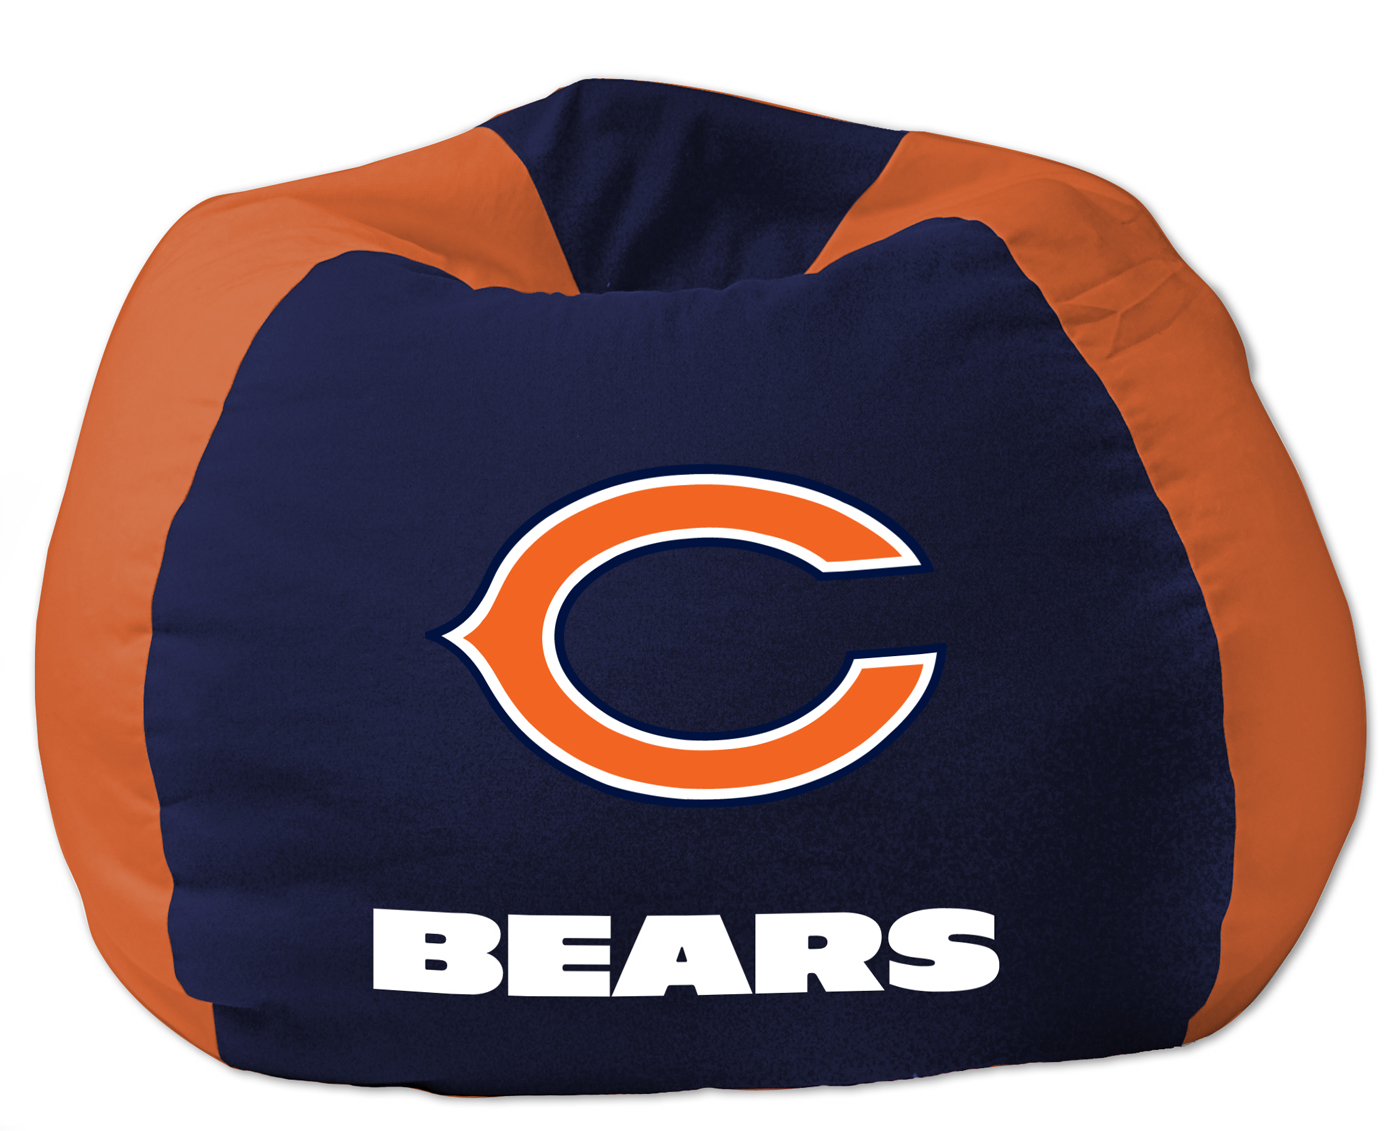 Cheap Chicago Bears Cameron Meredith Jerseys, Jerseys Nfl. Kitchen Floor Alternatives. Hardwood Flooring In The Kitchen. Kitchen Wall Color Ideas. Home Depot Glass Tile Kitchen Backsplash. Tin Kitchen Backsplash. Kitchen Floor Remodel. Best Kitchen Paint Colors With White Cabinets. Best Color For Kitchen Walls With Dark Cabinets